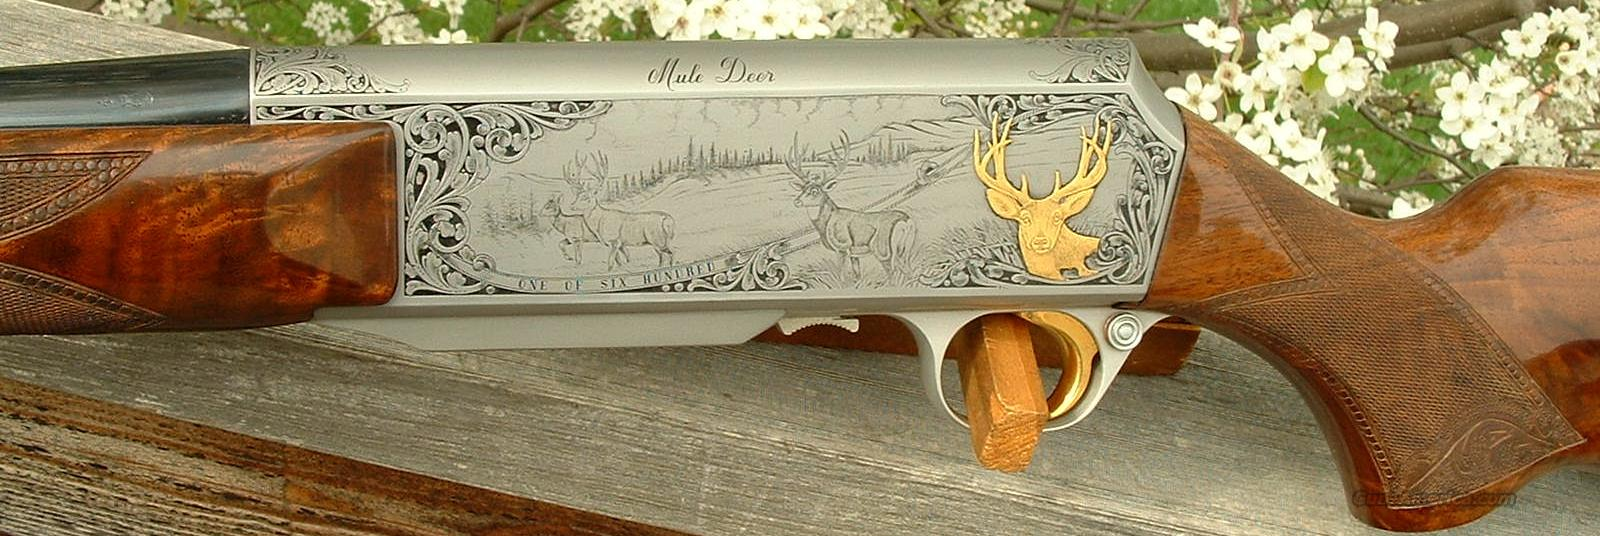 Browning BAR North American Deer Rifle Issue 30-06 Spfd. for sale (925671512)